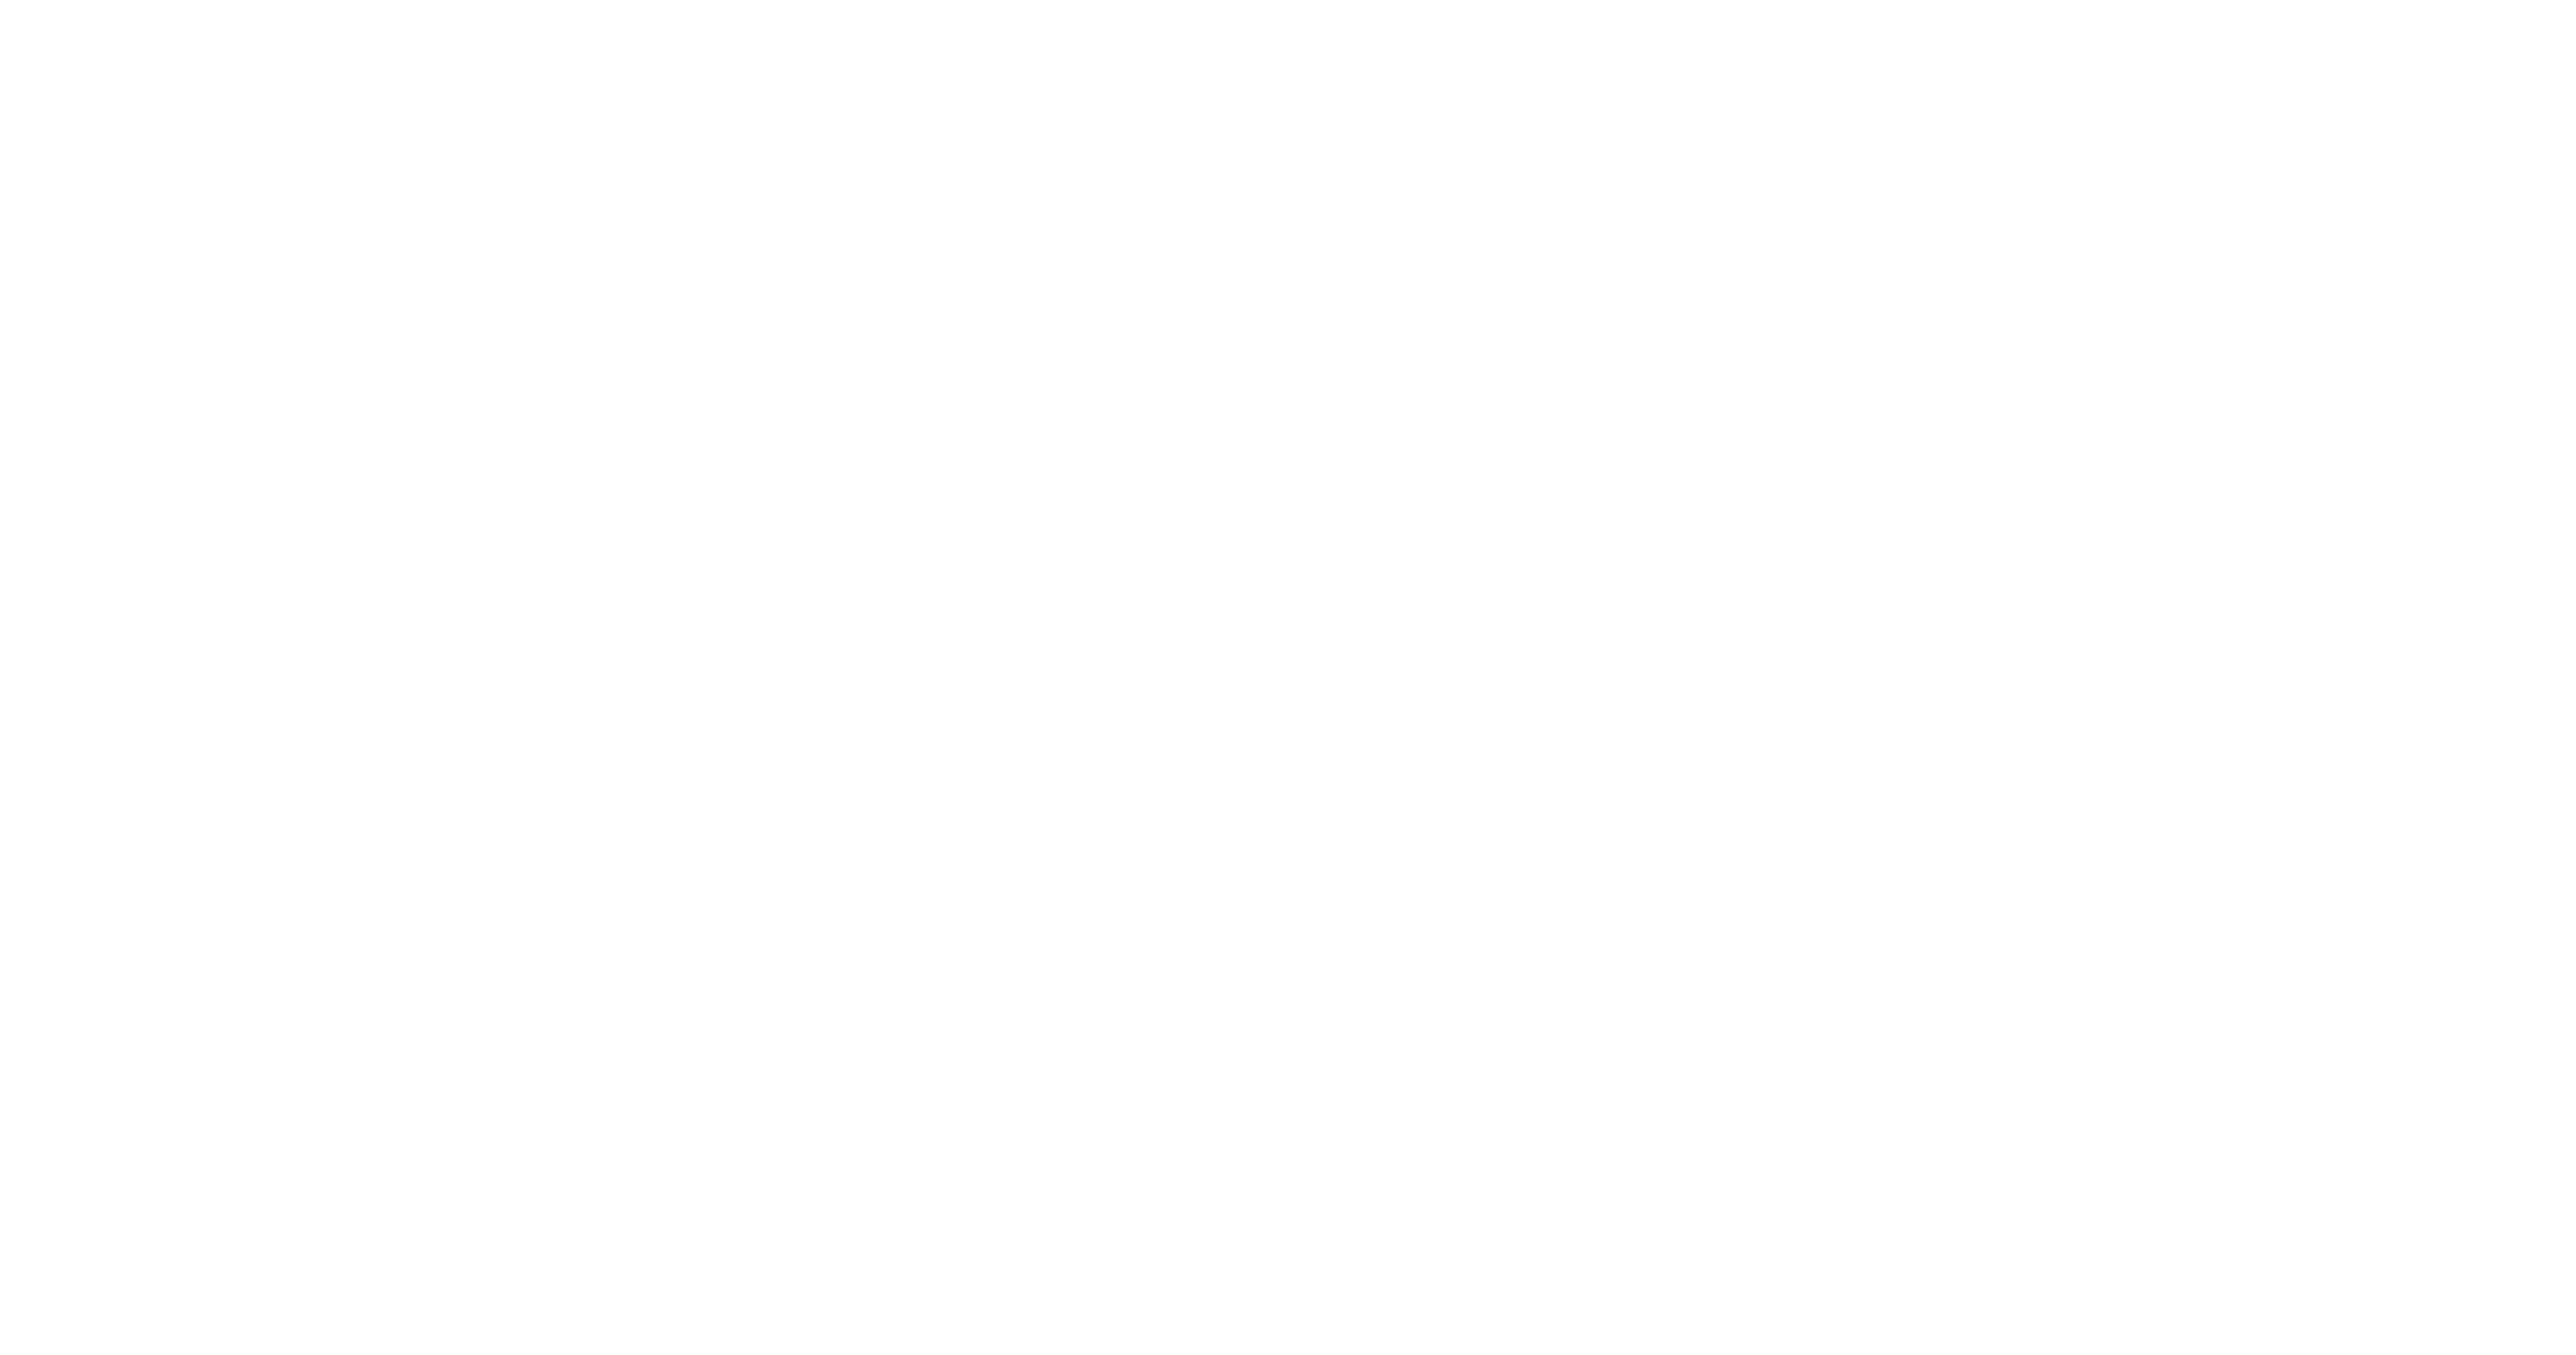 DPG Media | Audium | Audiovisuele producties en verhuur op broadcastmarkt Ranst